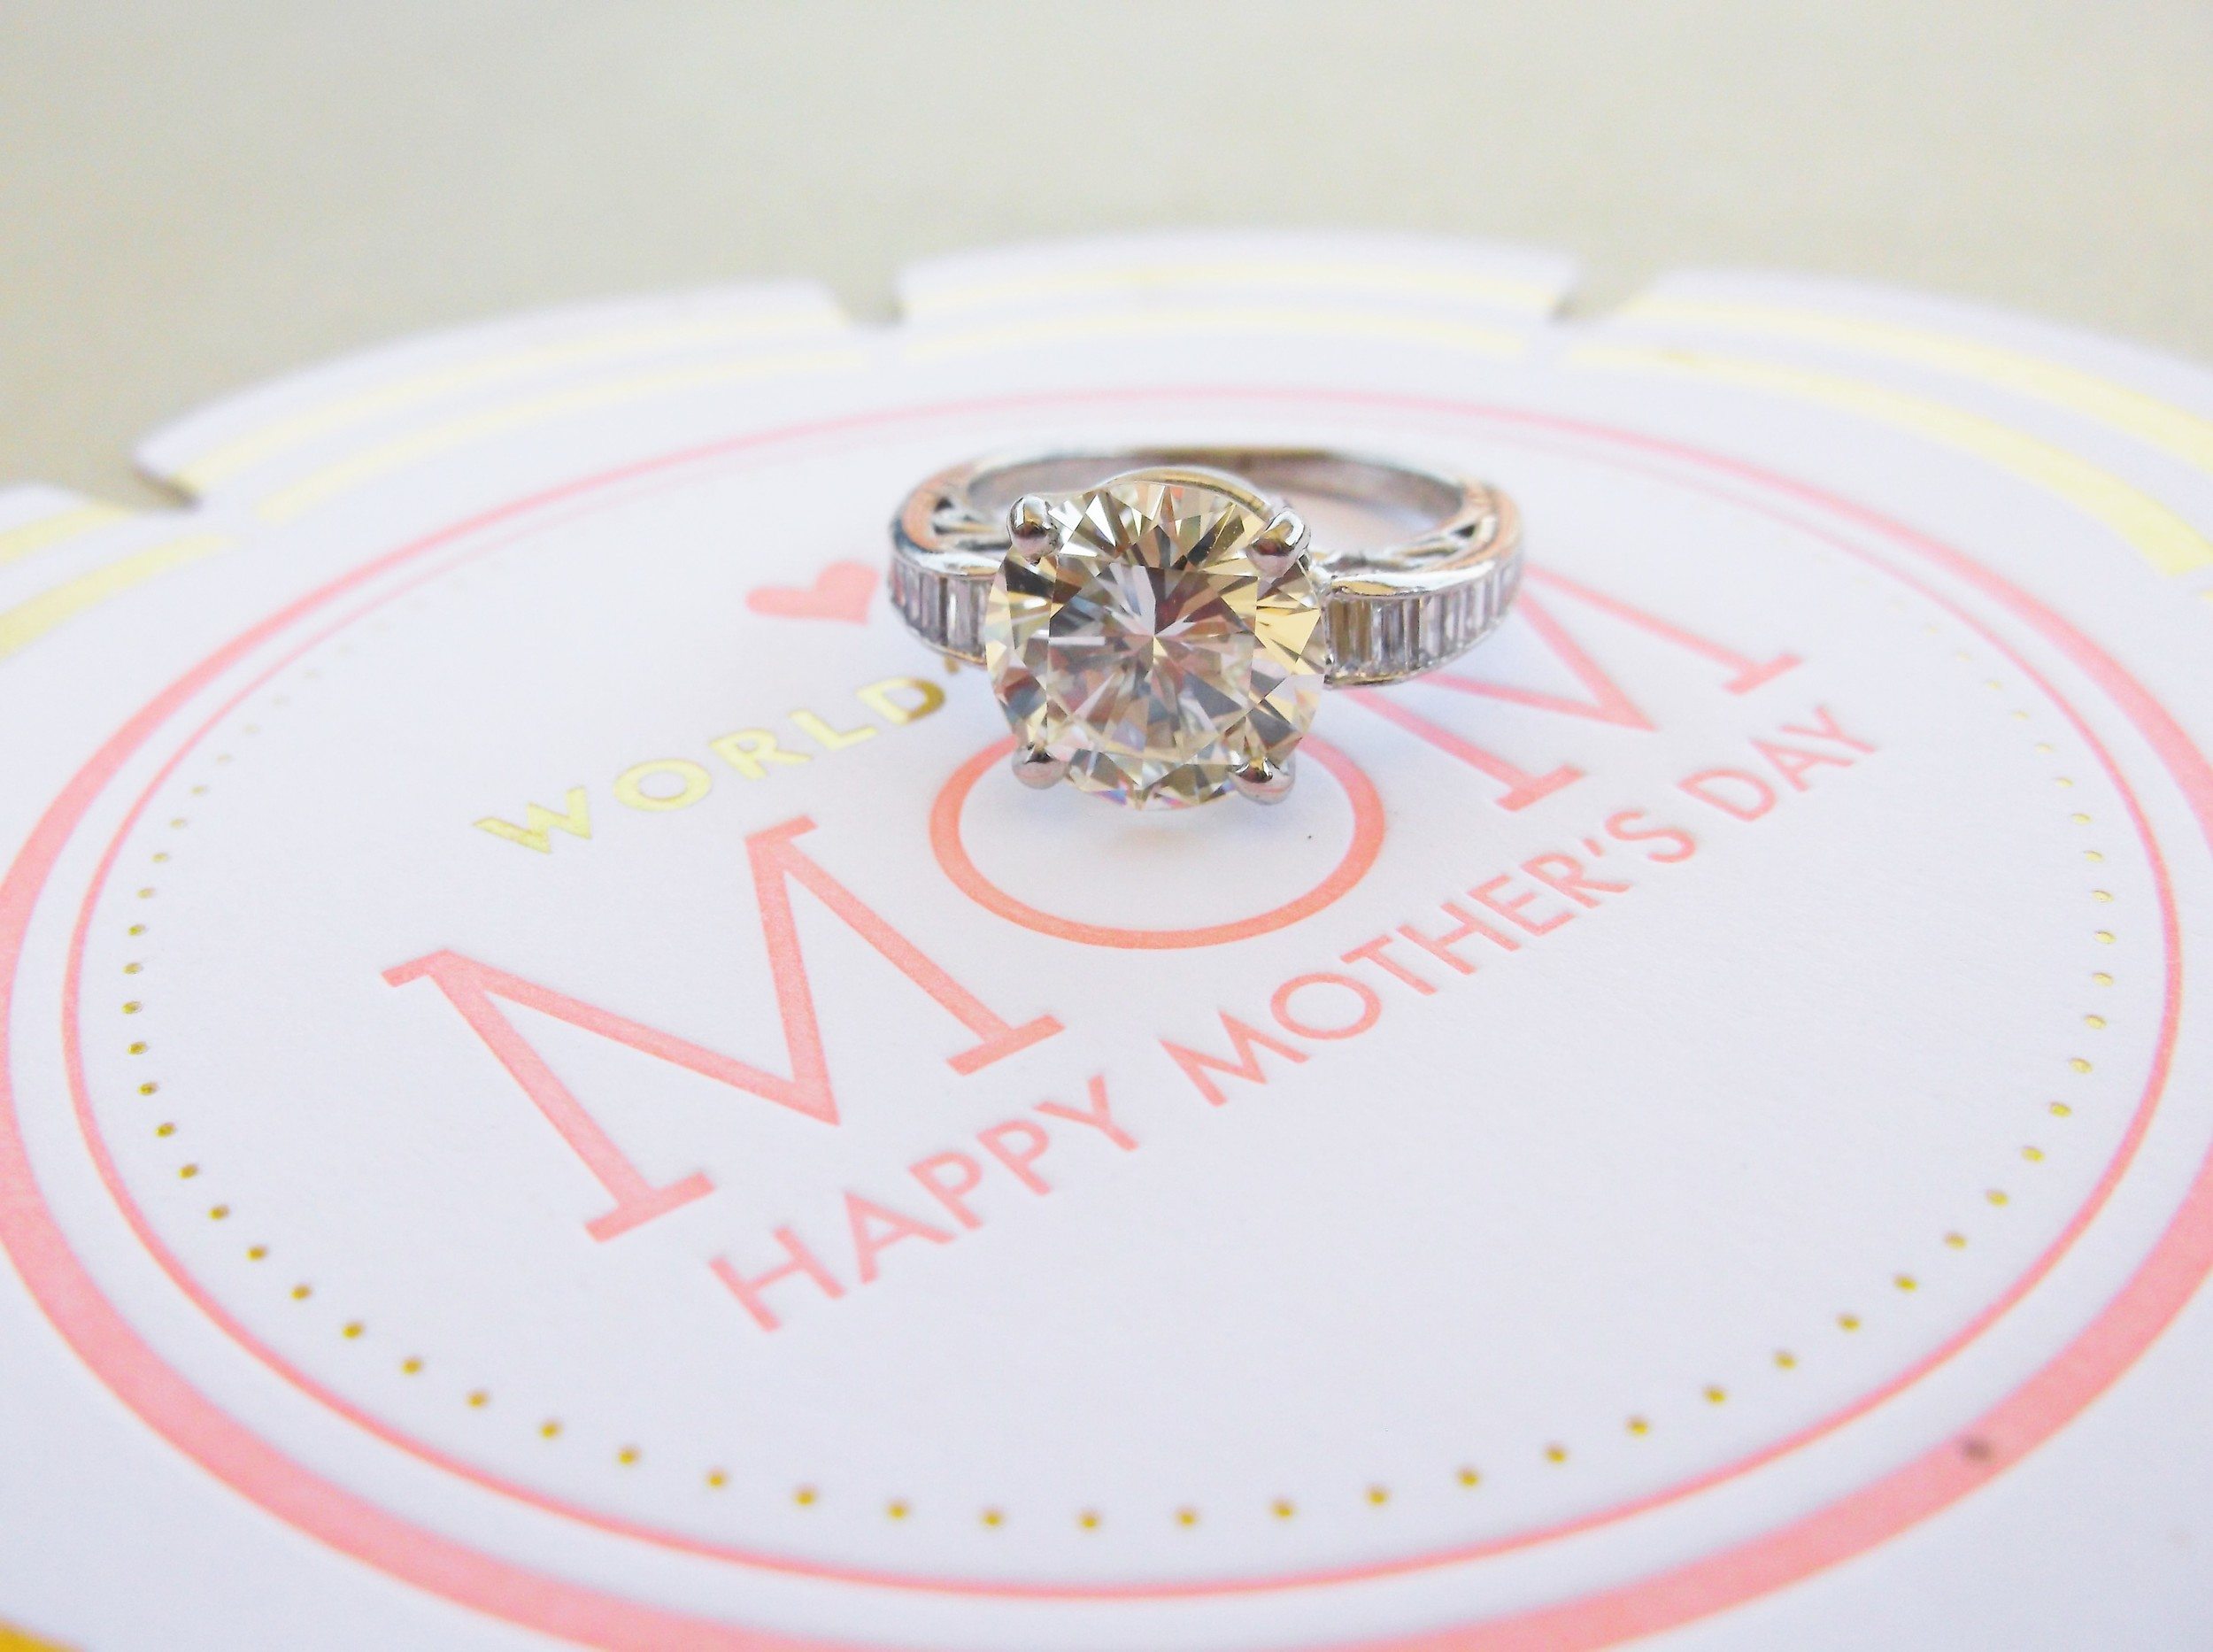 SOLD - Stunning 3.58 carat diamond set in a platinum and baguette diamond detail mounting.